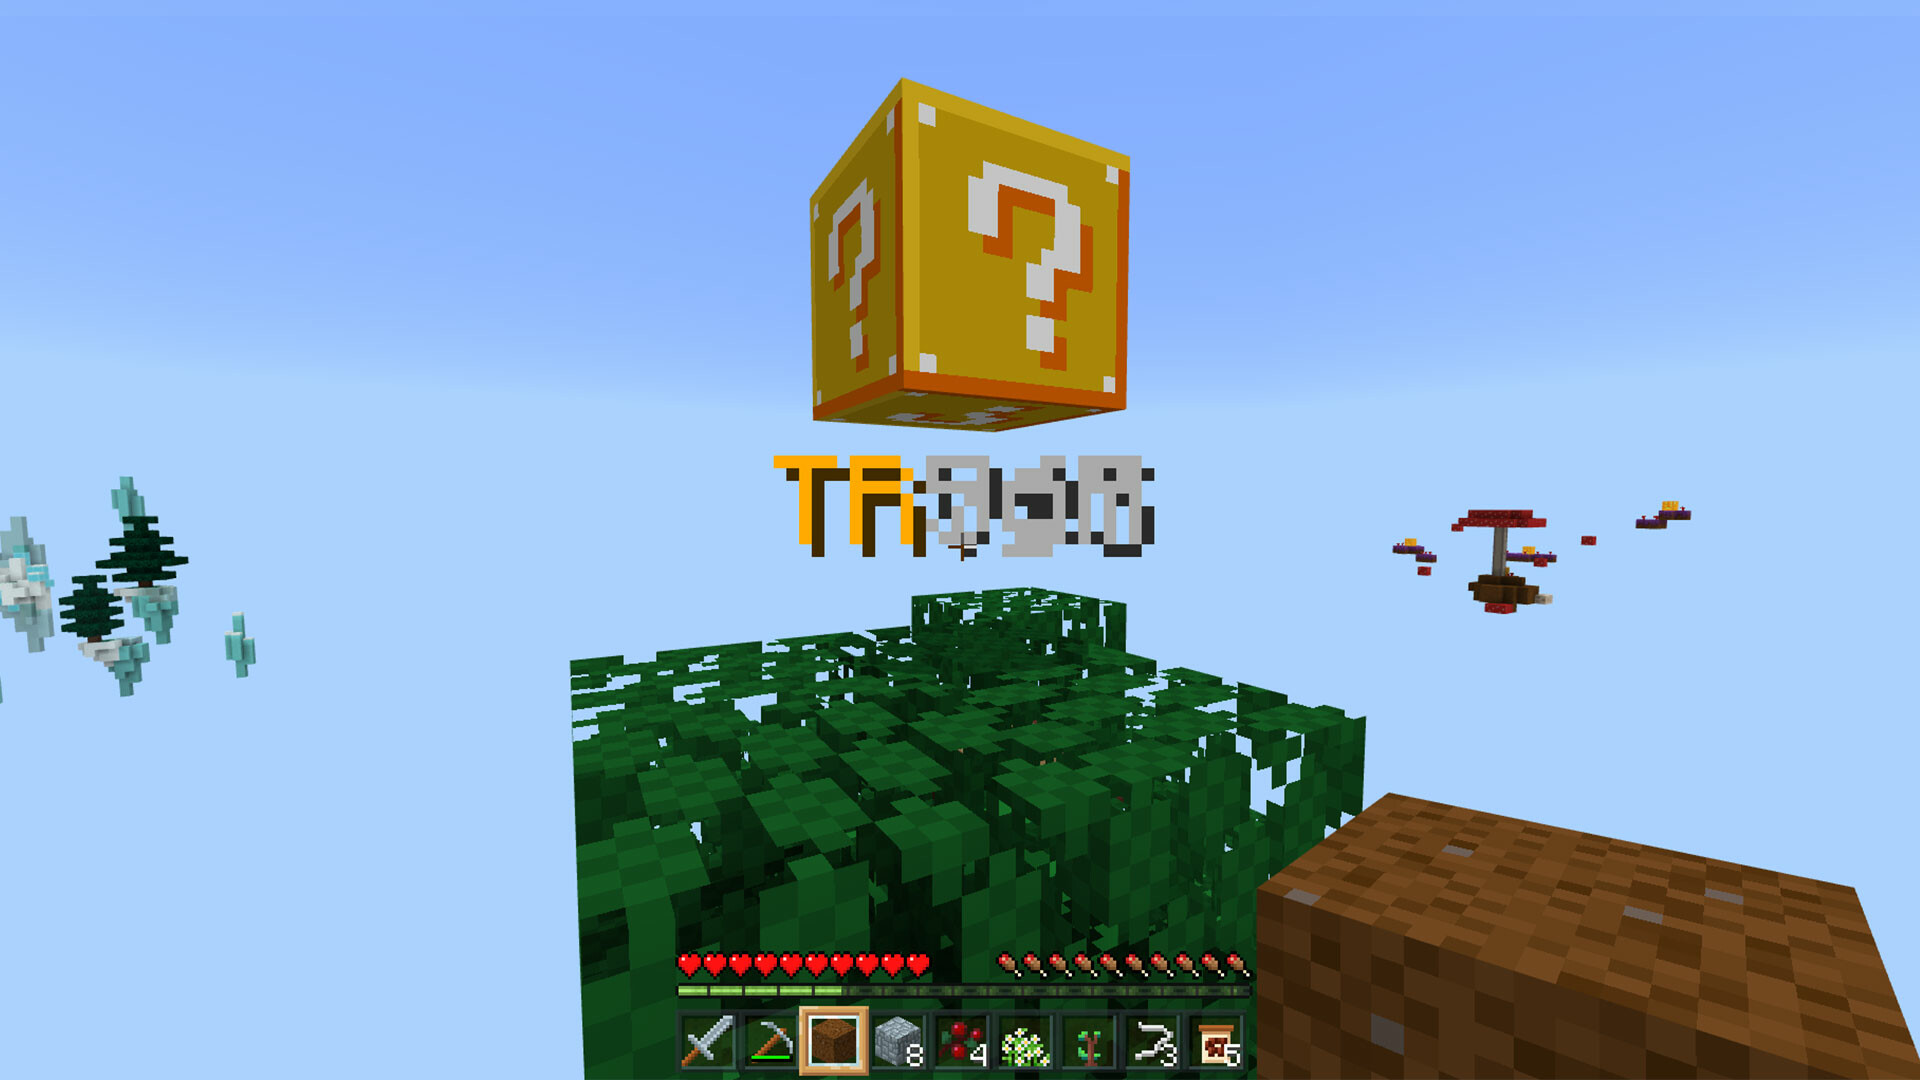 Triggering our LuckyBlock! Will we get a Trick or a Treat?